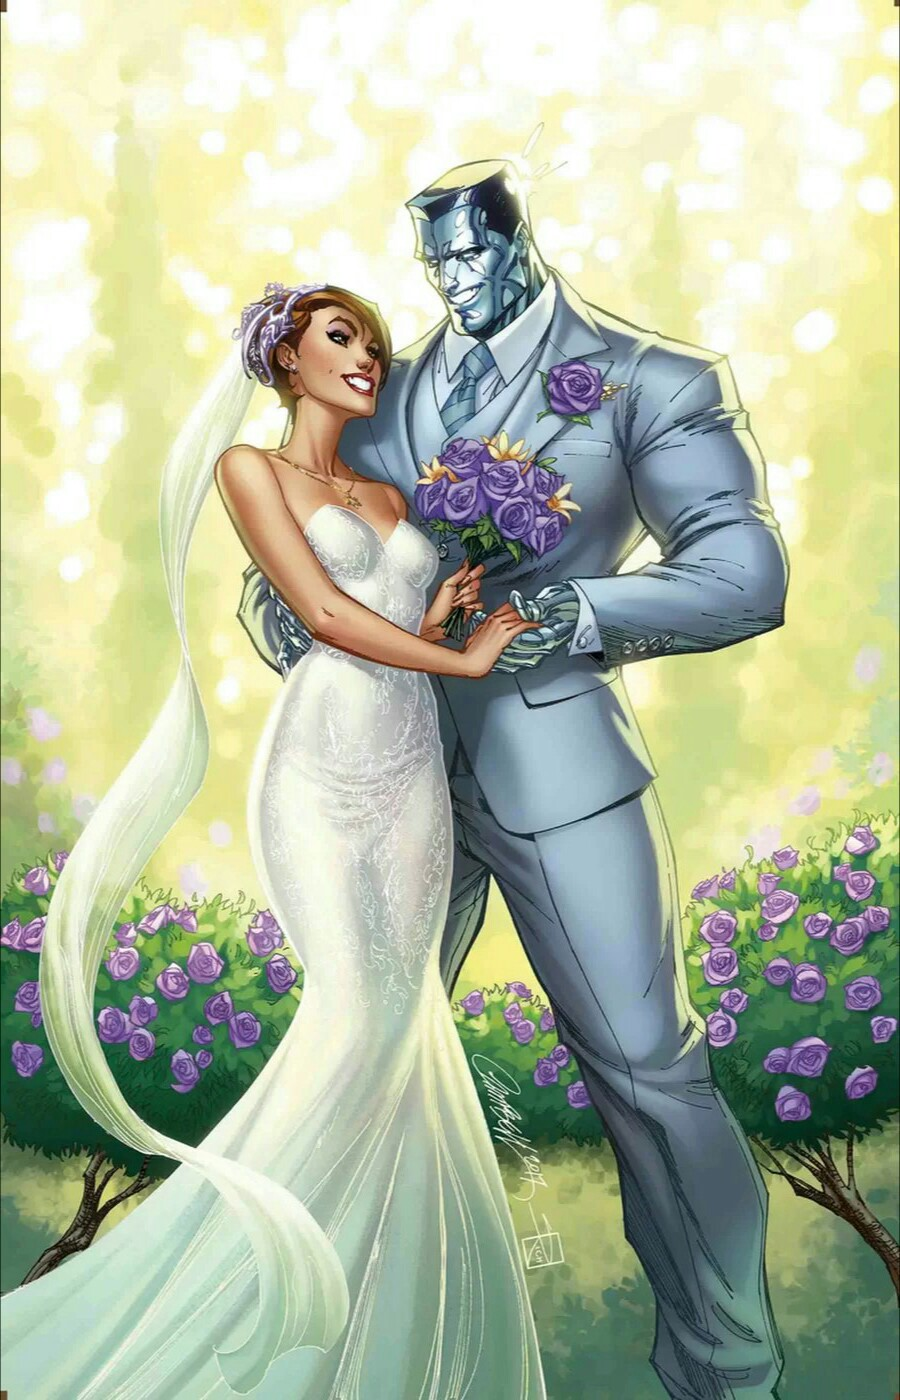 X-Men Gold Vol 2 30 Kitty and Colossus Variant Textless.jpg